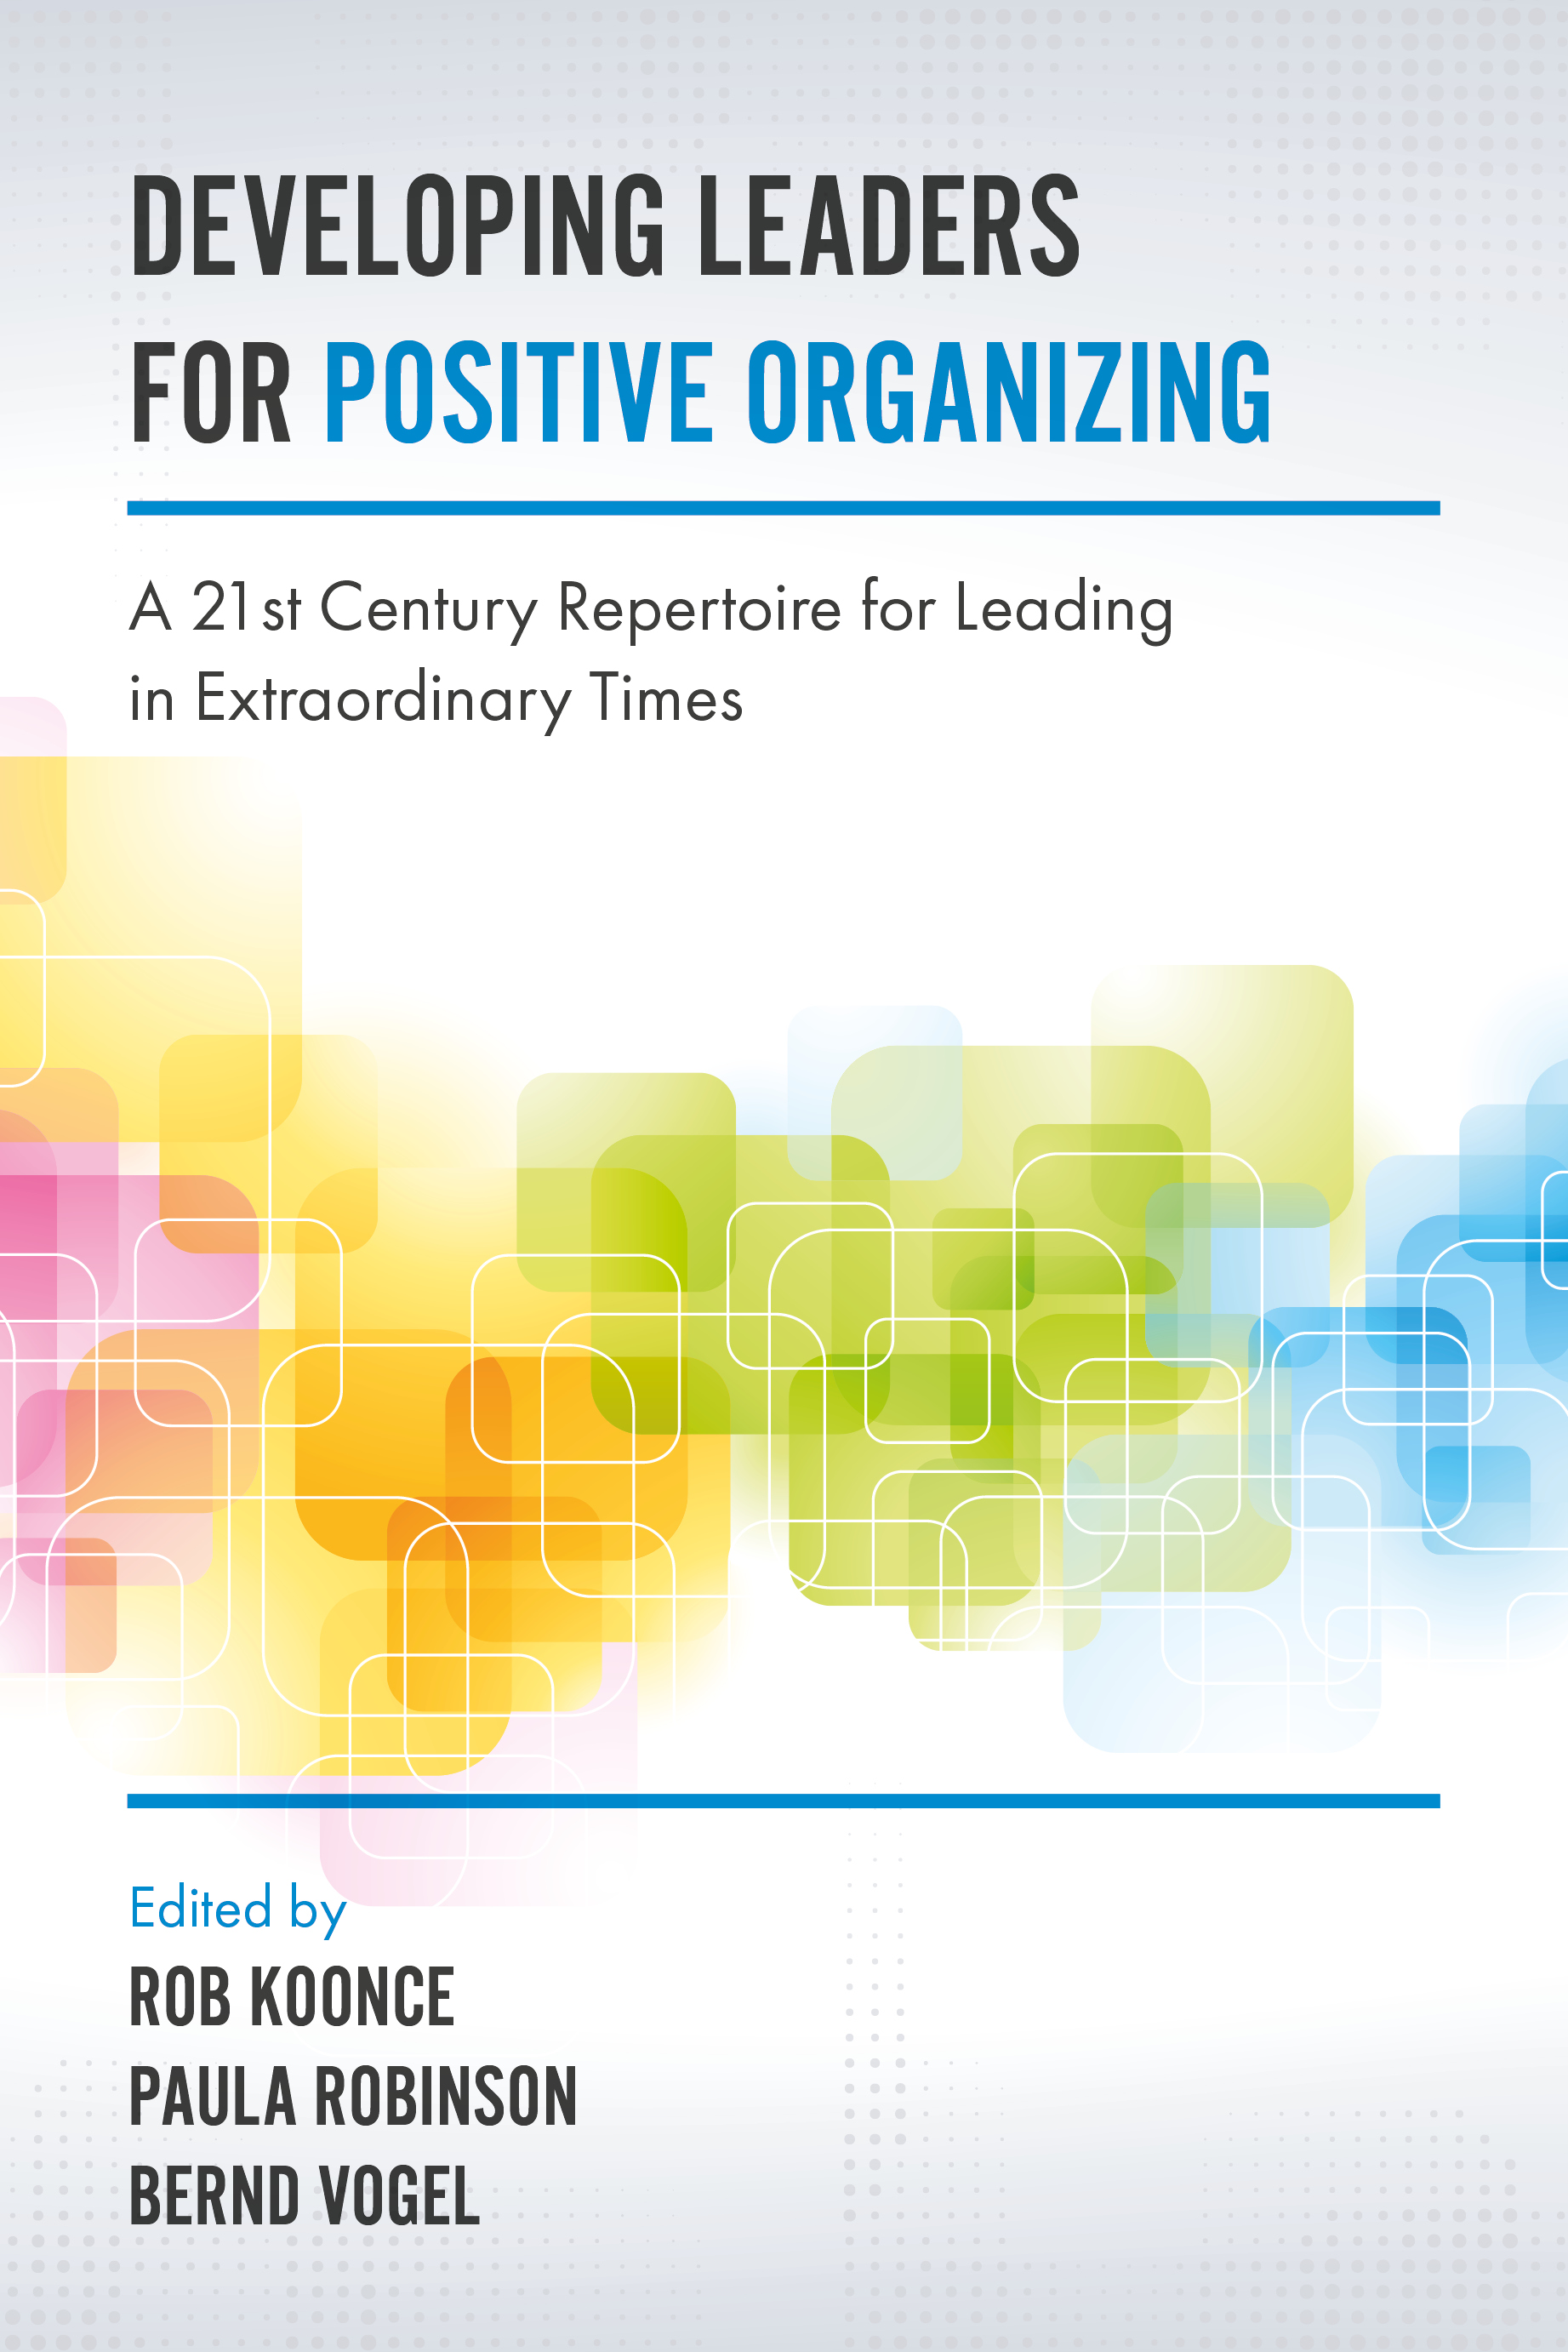 Book cover for Developing Leaders for Positive Organizing:  A 21st Century Repertoire for Leading in Extraordinary Times a book by Bernd  Vogel, Rob  Koonce, Paula  Robinson